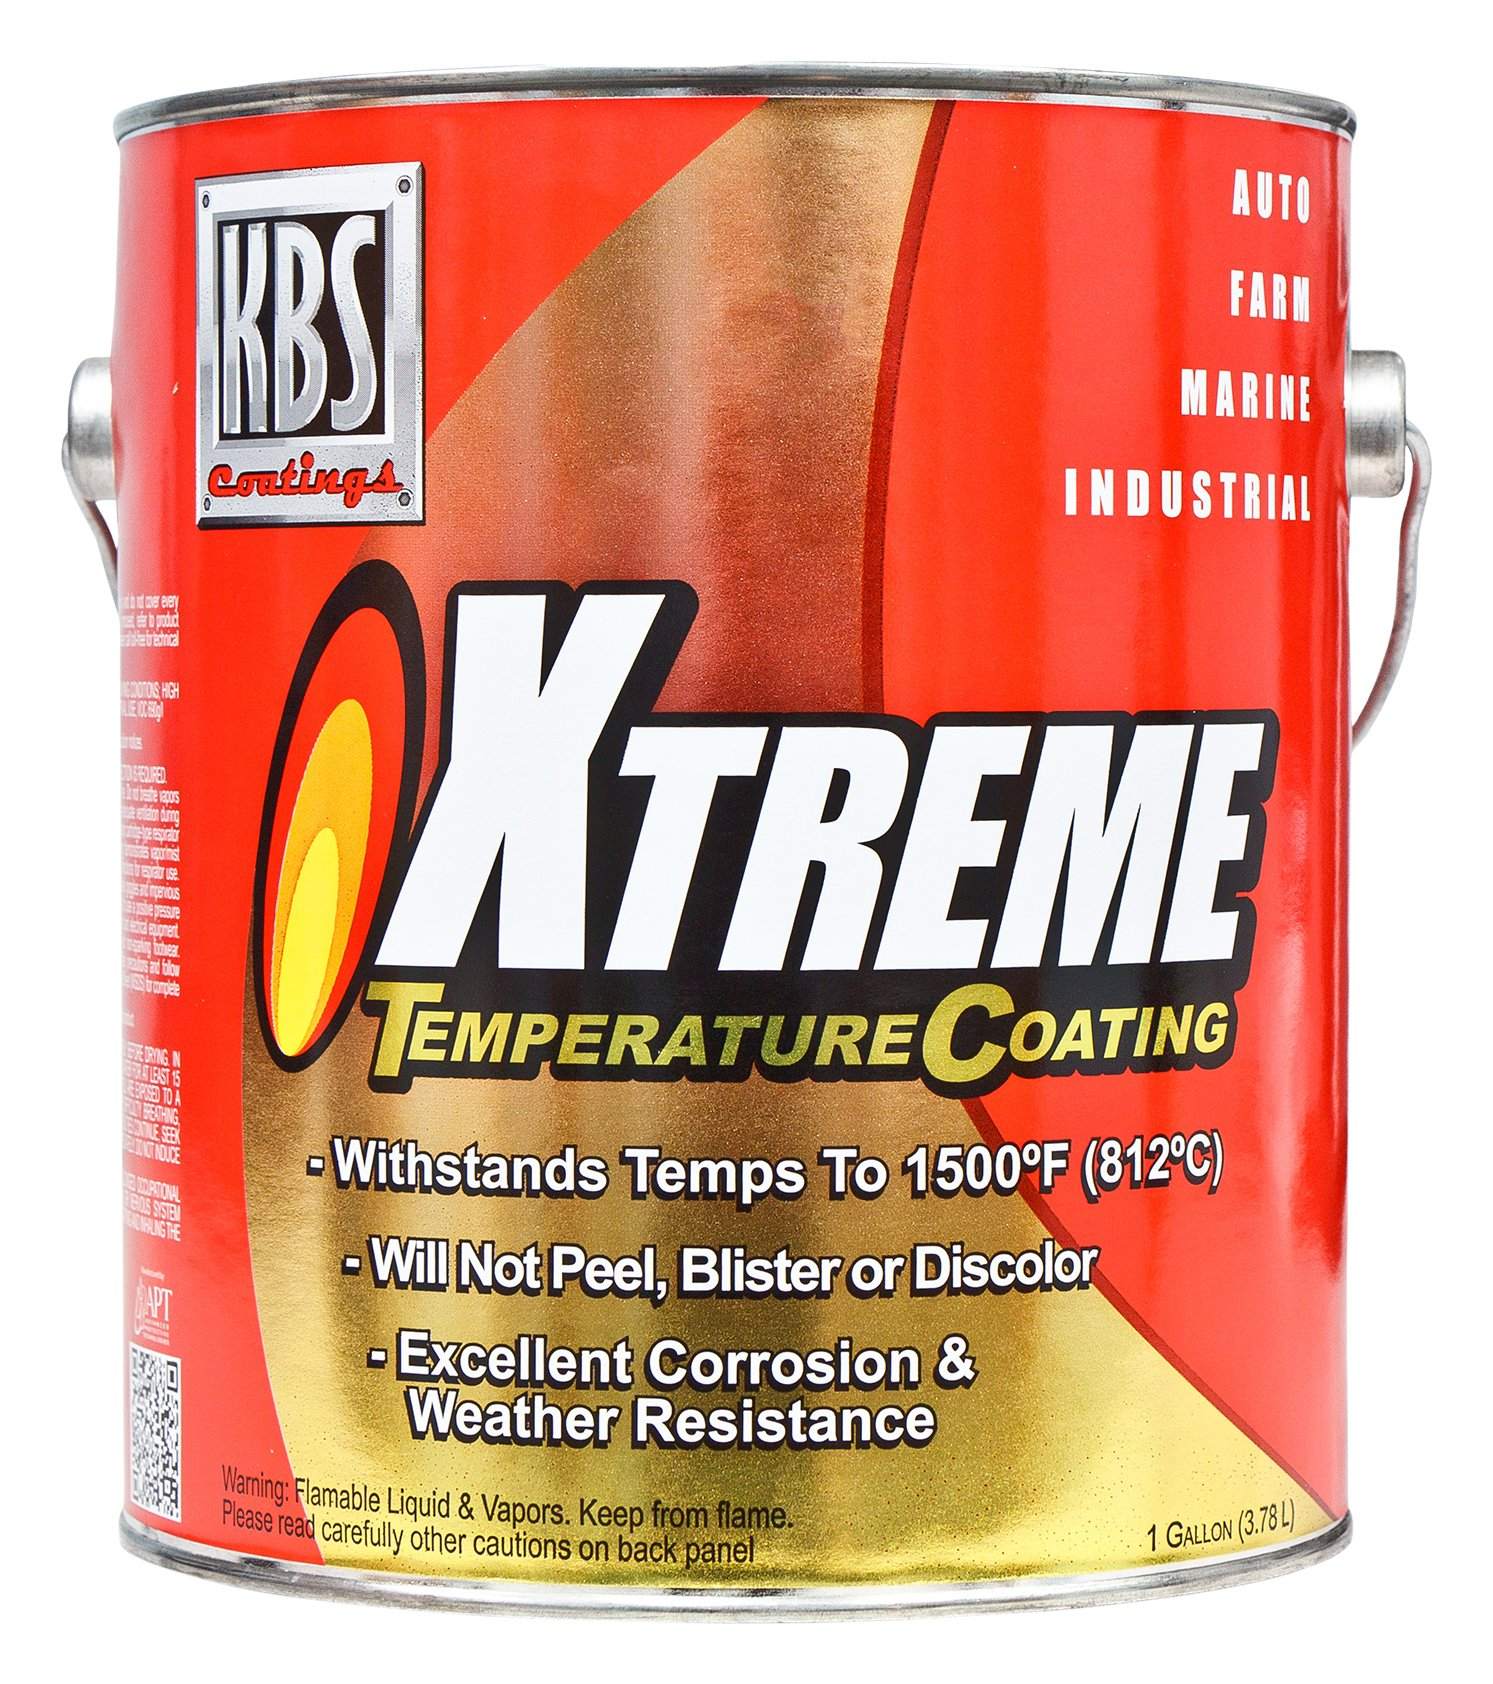 KBS Coatings 65523 Stainless Steel Xtreme Temperature Coating - 1 Gallon